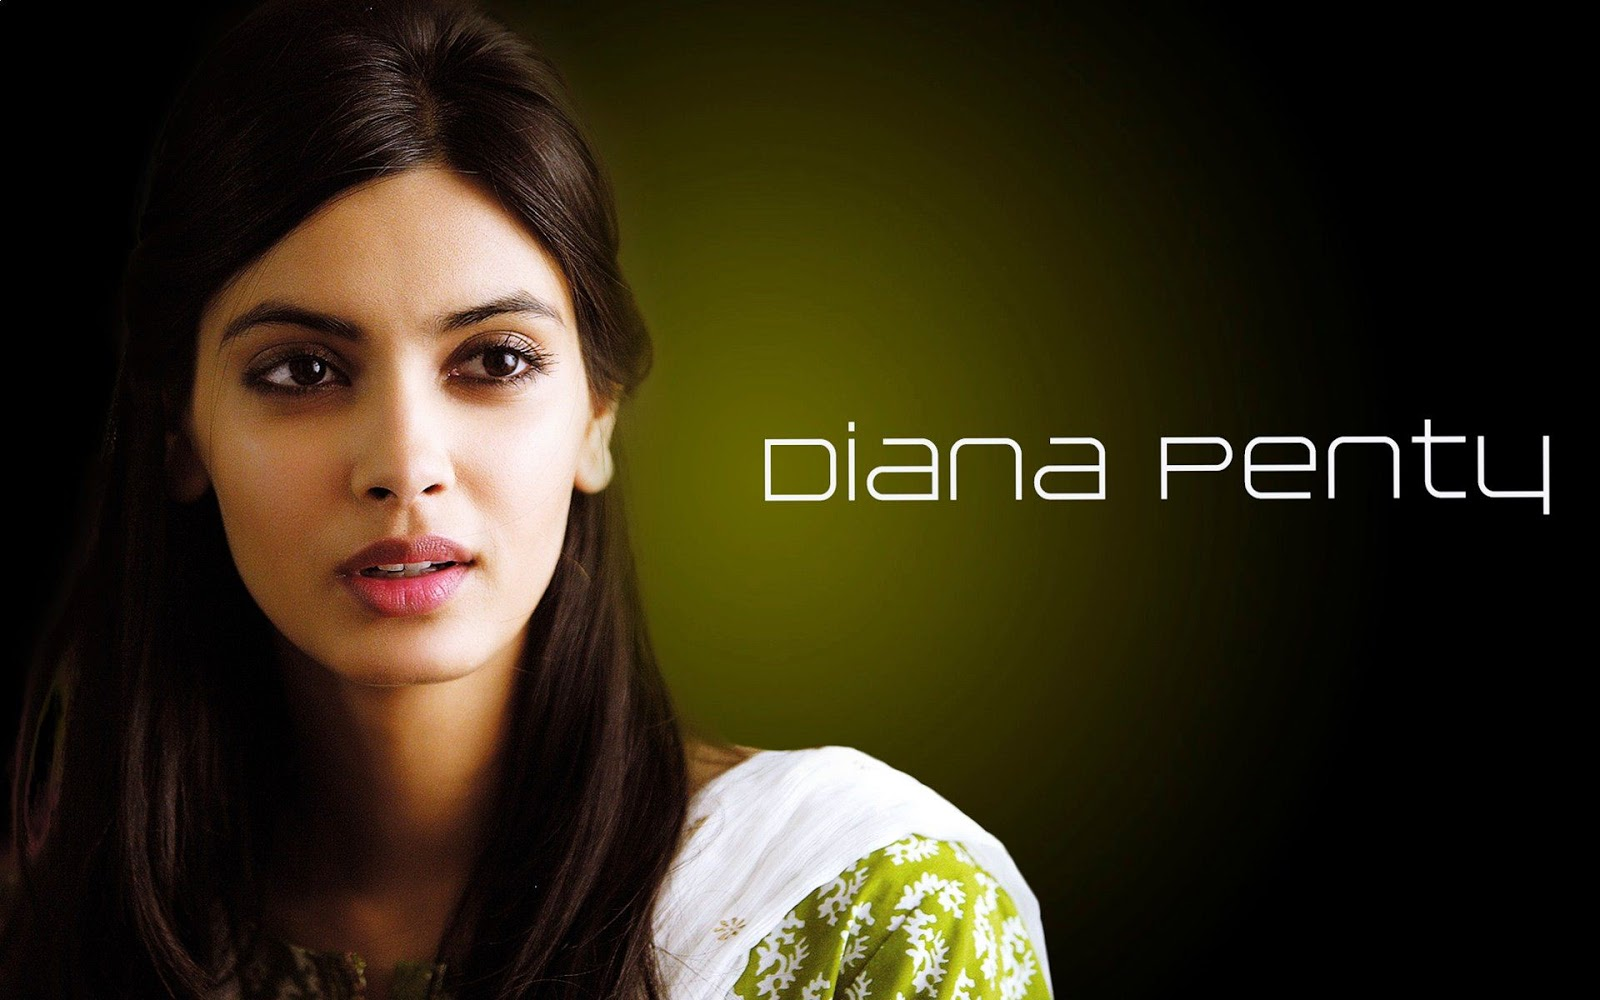 diana penty wallpapers free download | indian hd wallpaper free download